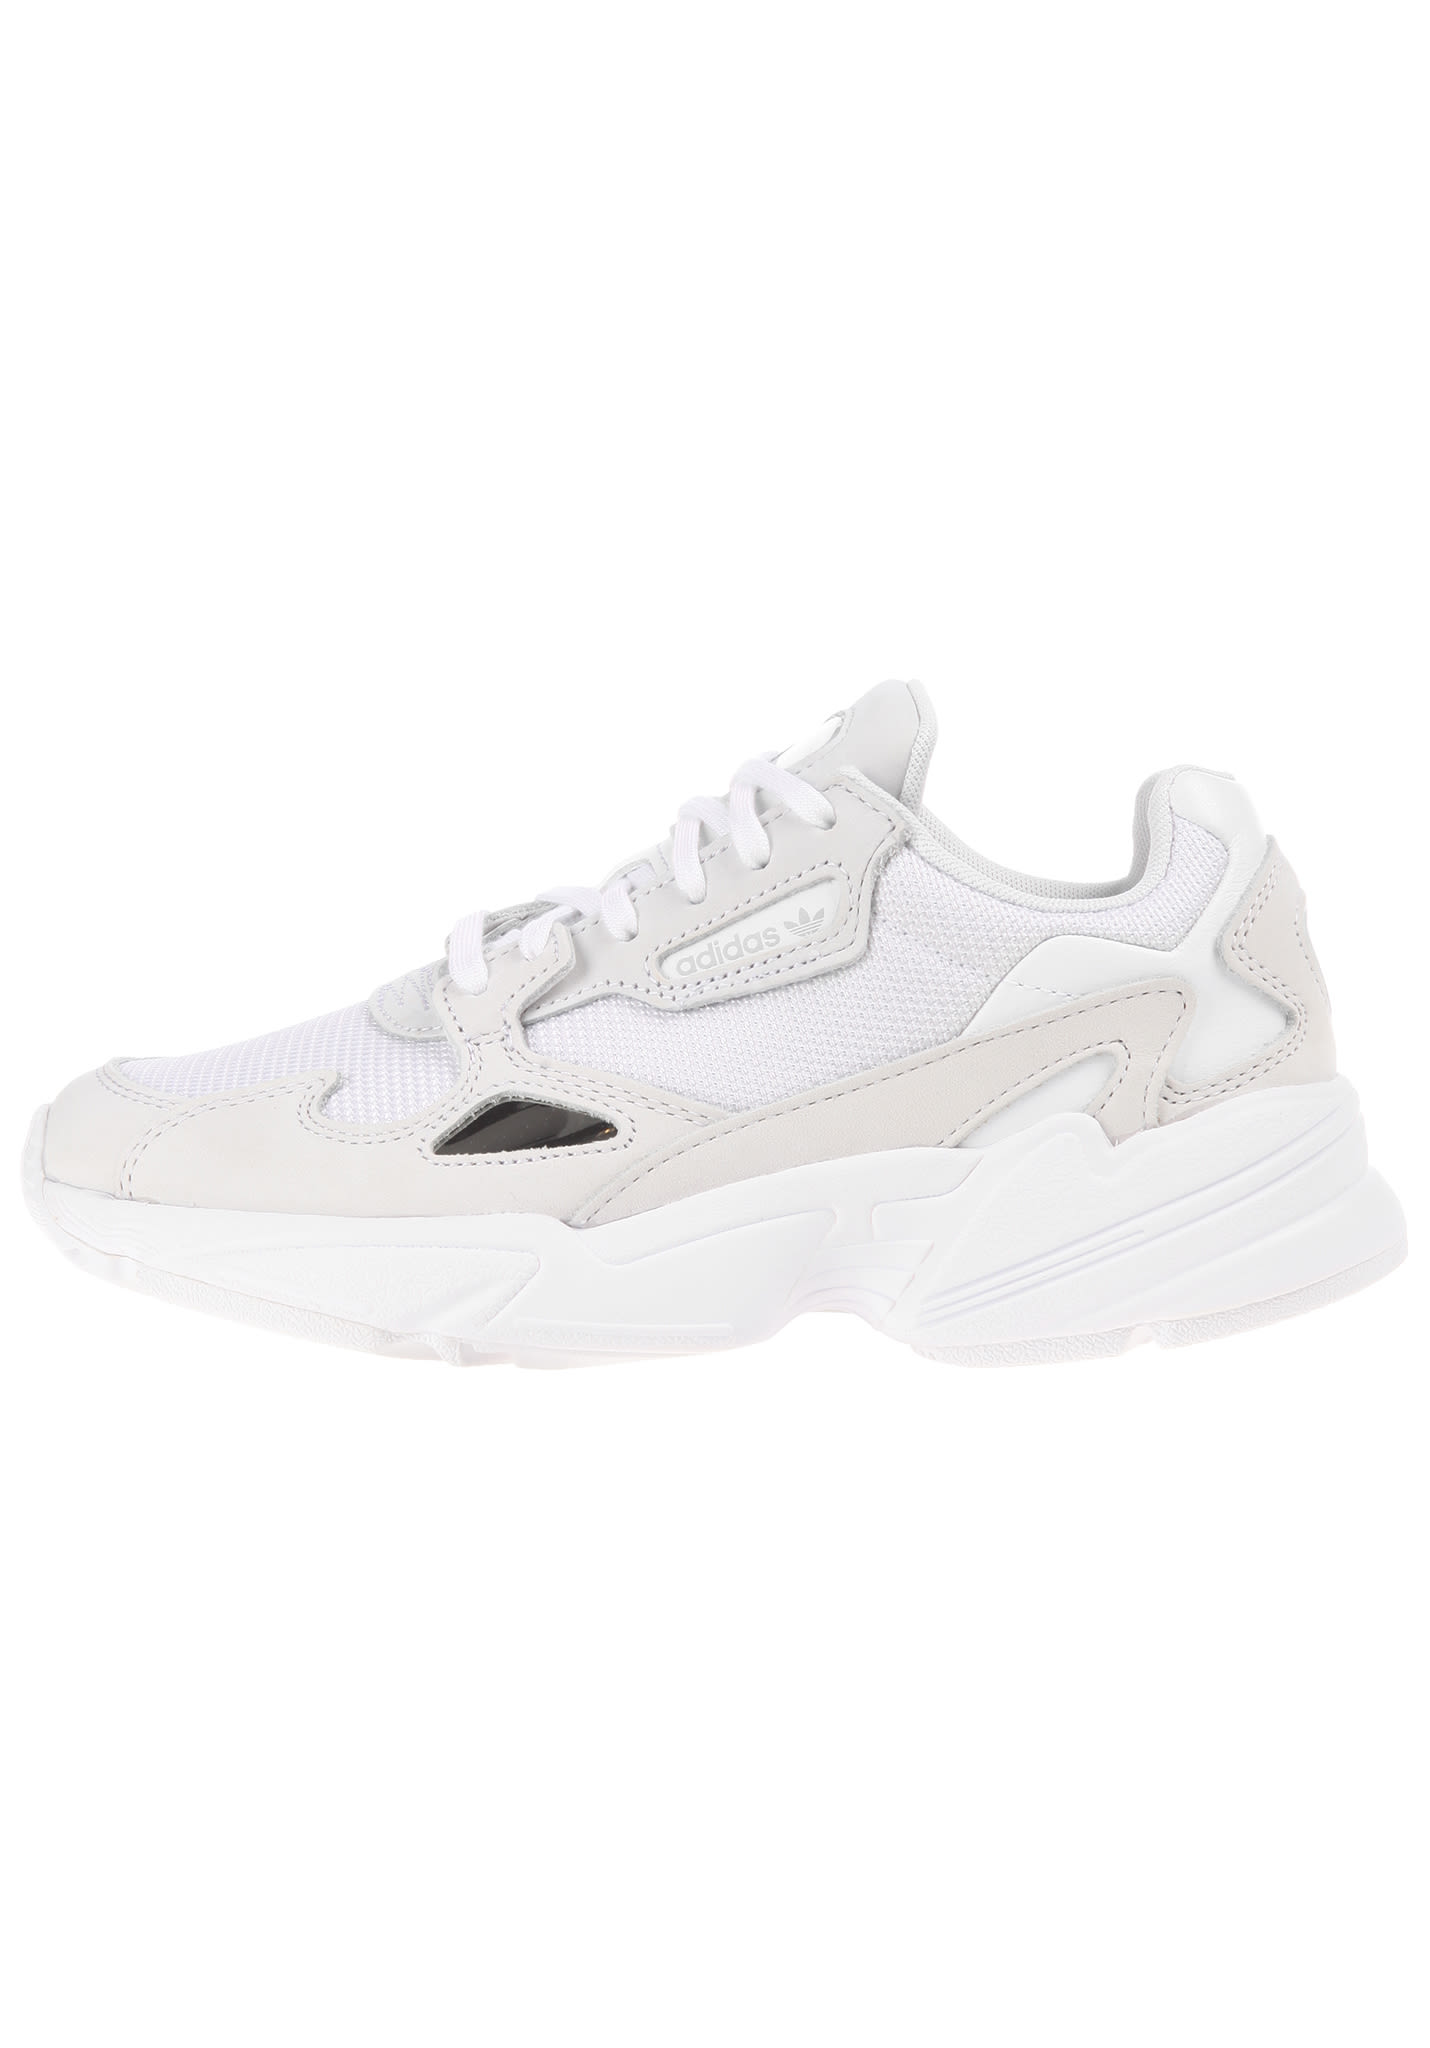 ADIDAS ORIGINALS Falcon Baskets pour Femme Blanc